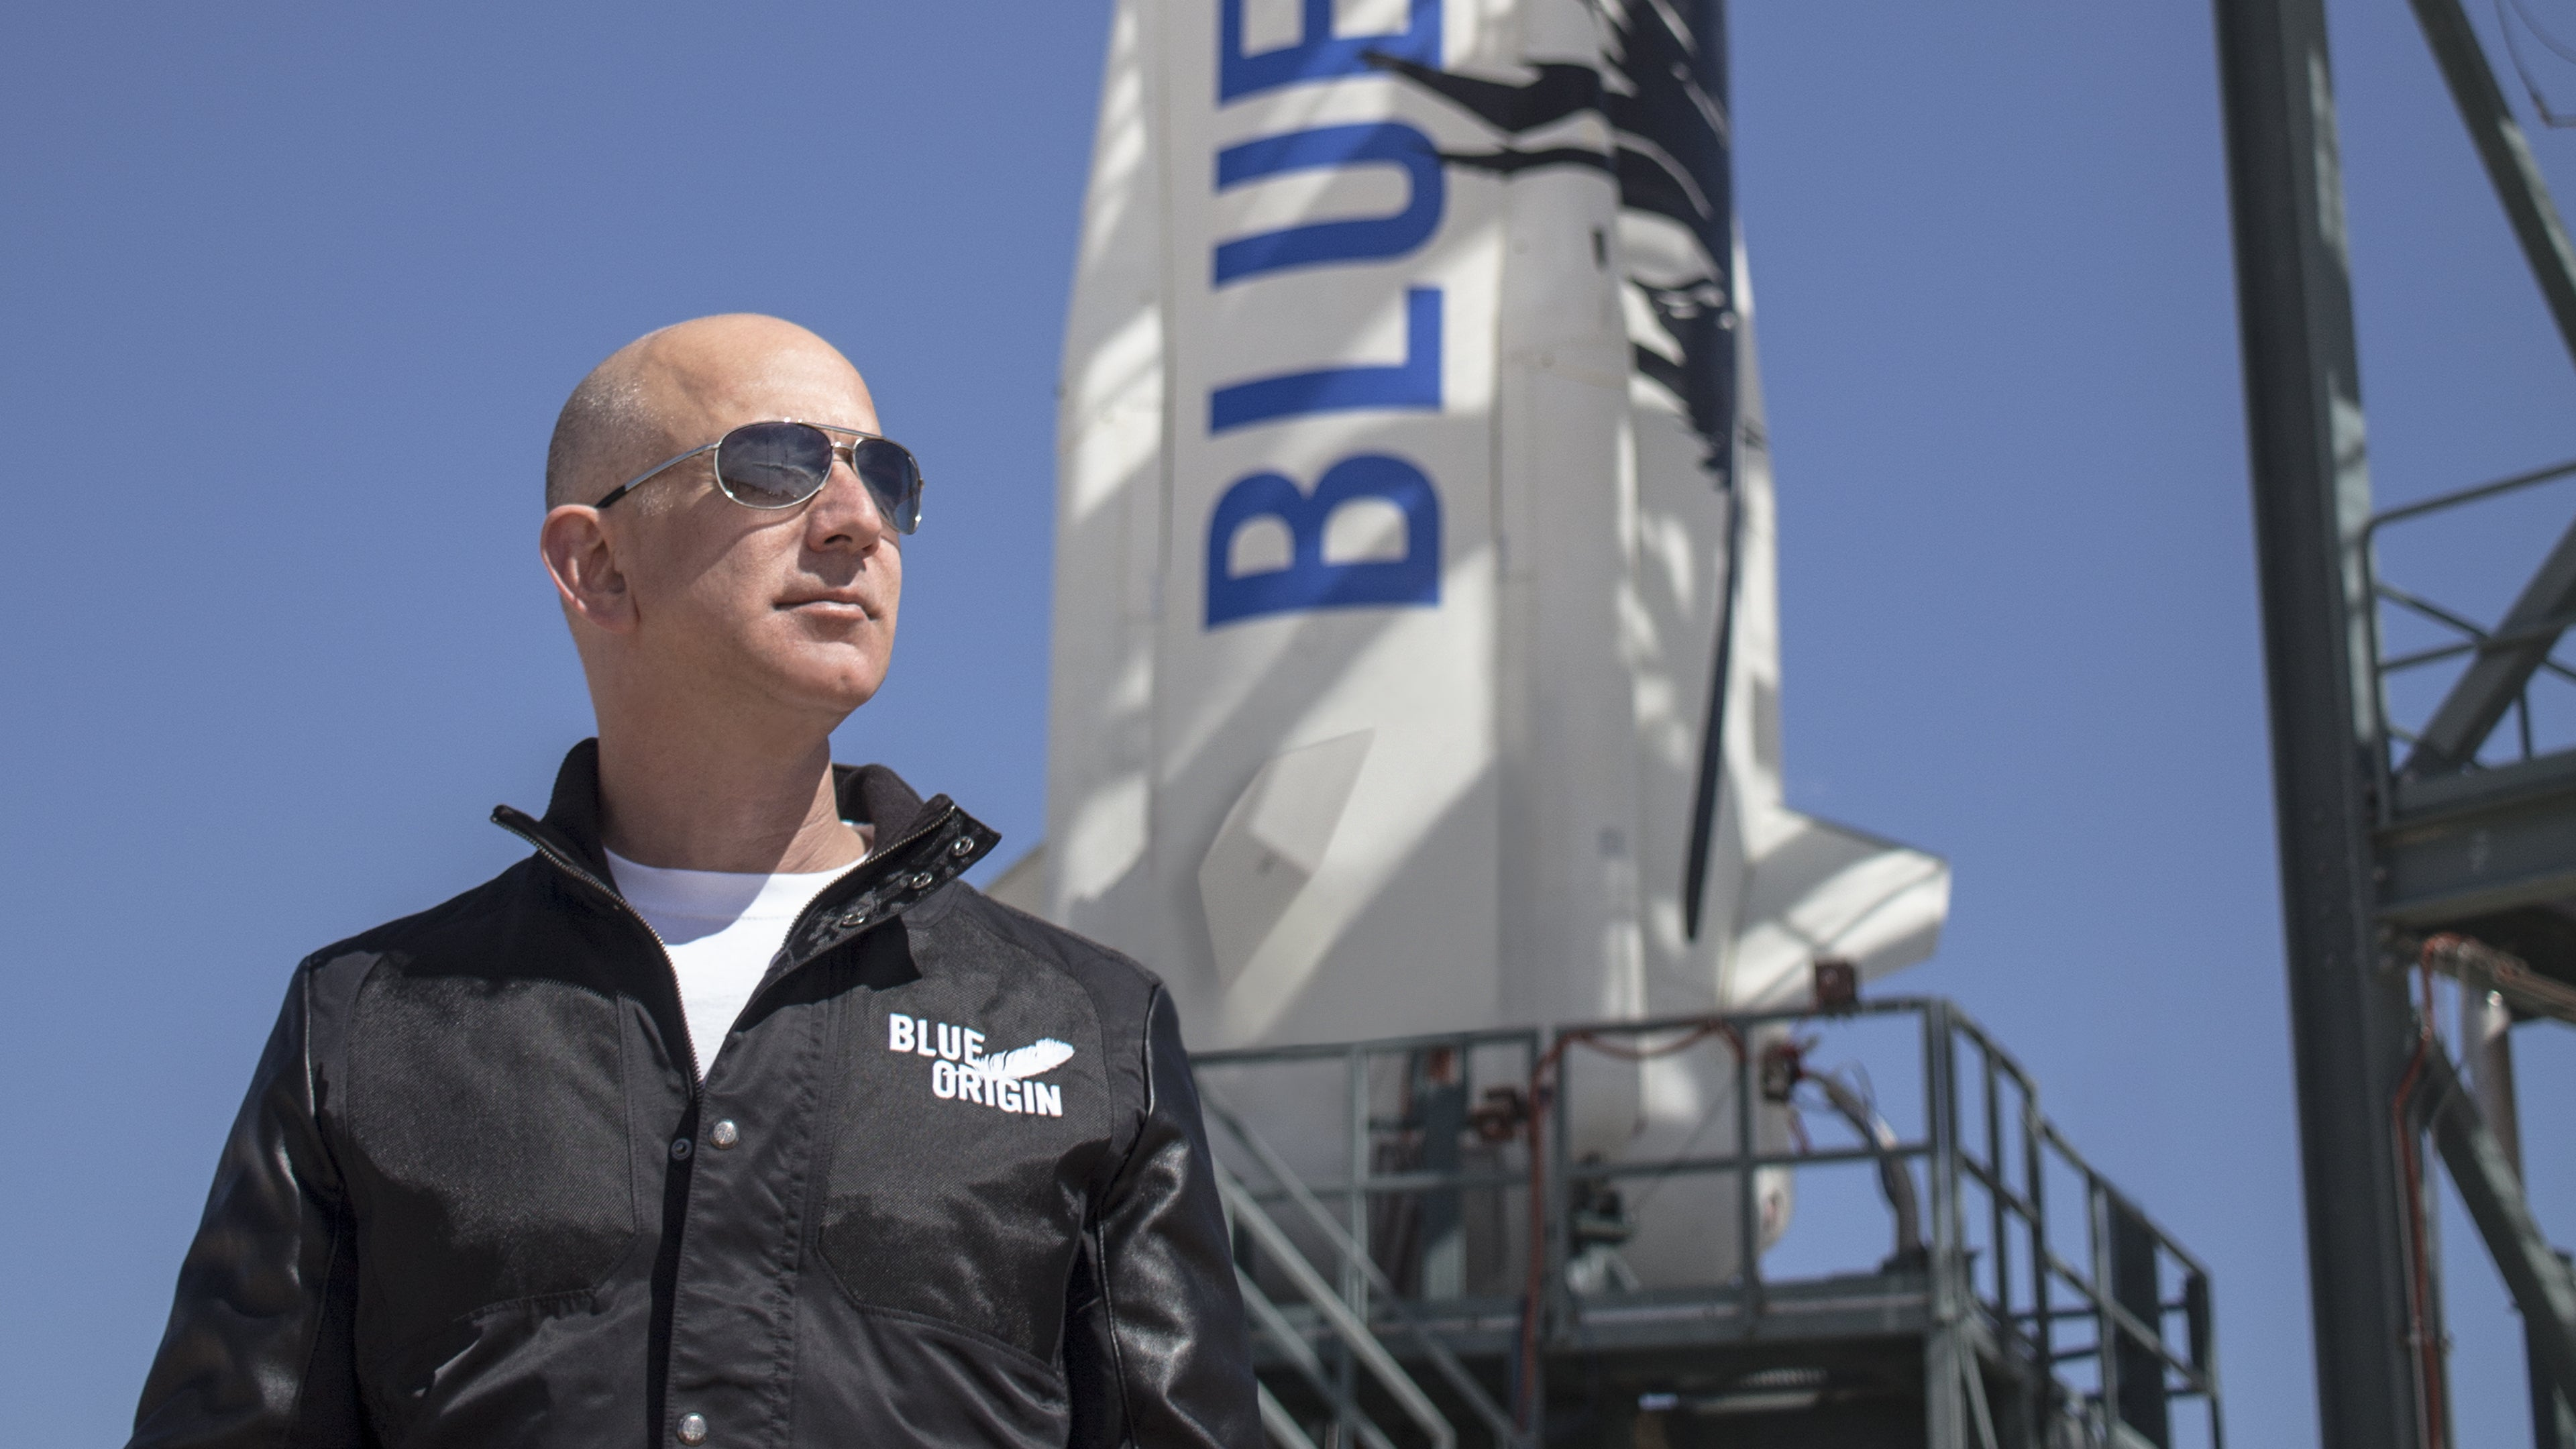 How Amazon Ceo Jeff Bezos Is Funding Blue Origin The Motley Fool